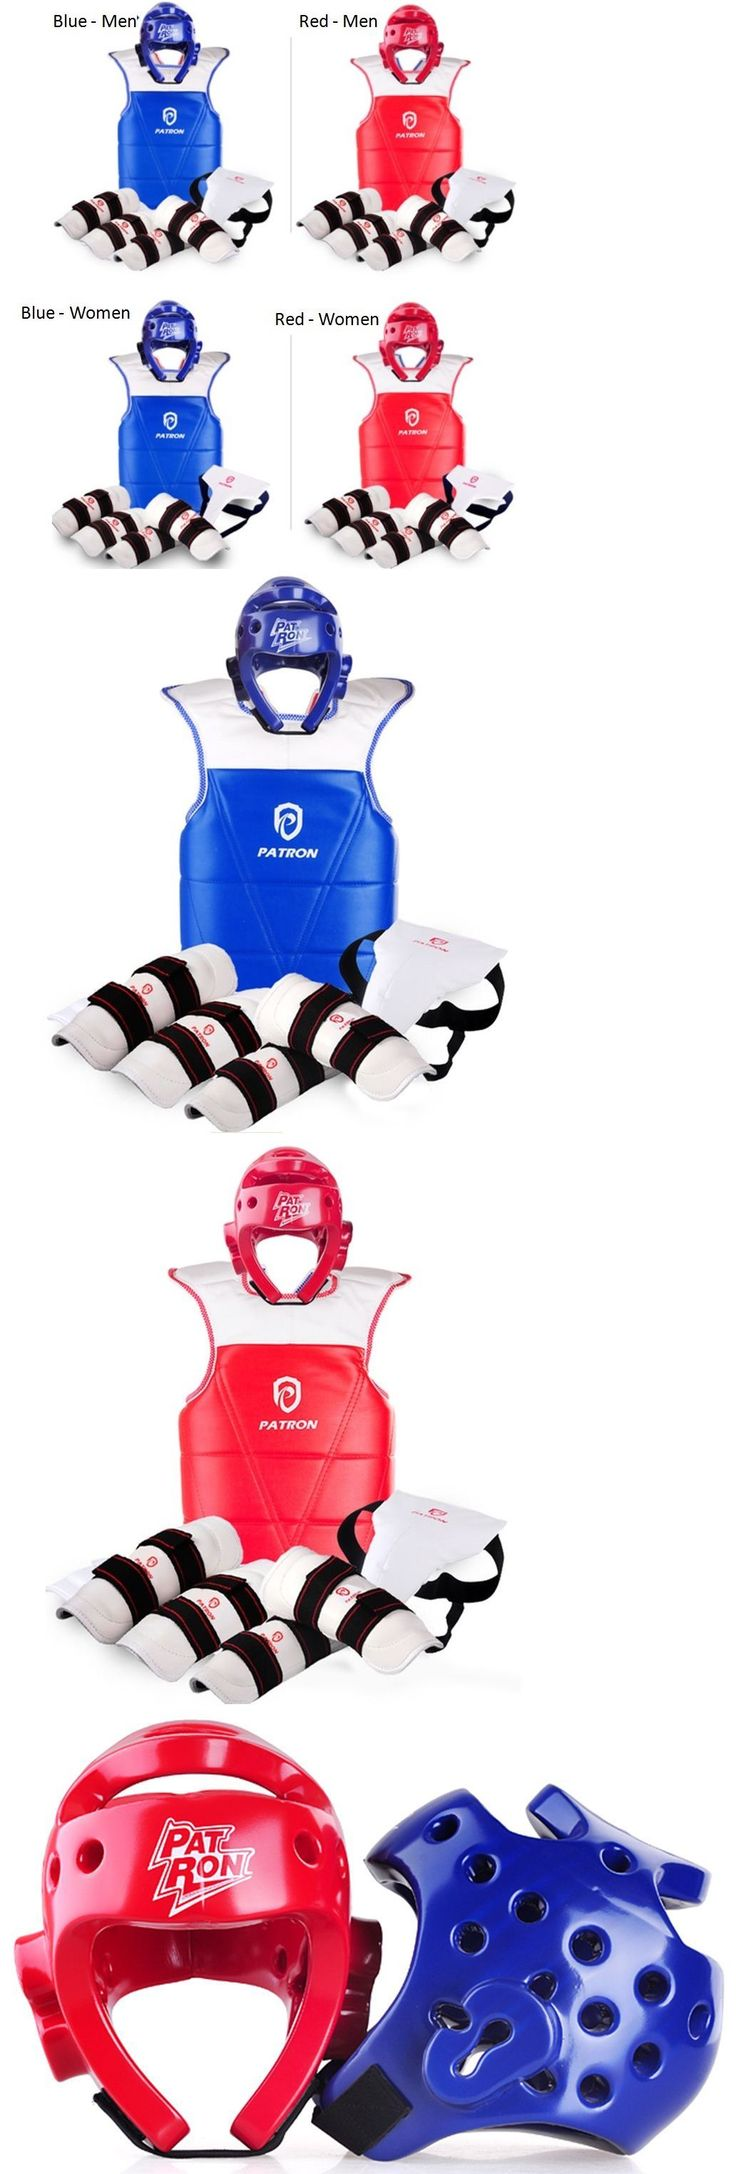 Other Combat Sport Protection 179783: Taekwondo Sparring Gear Complete Safety Full Set Training Protection Equipment -> BUY IT NOW ONLY: $138.88 on eBay!